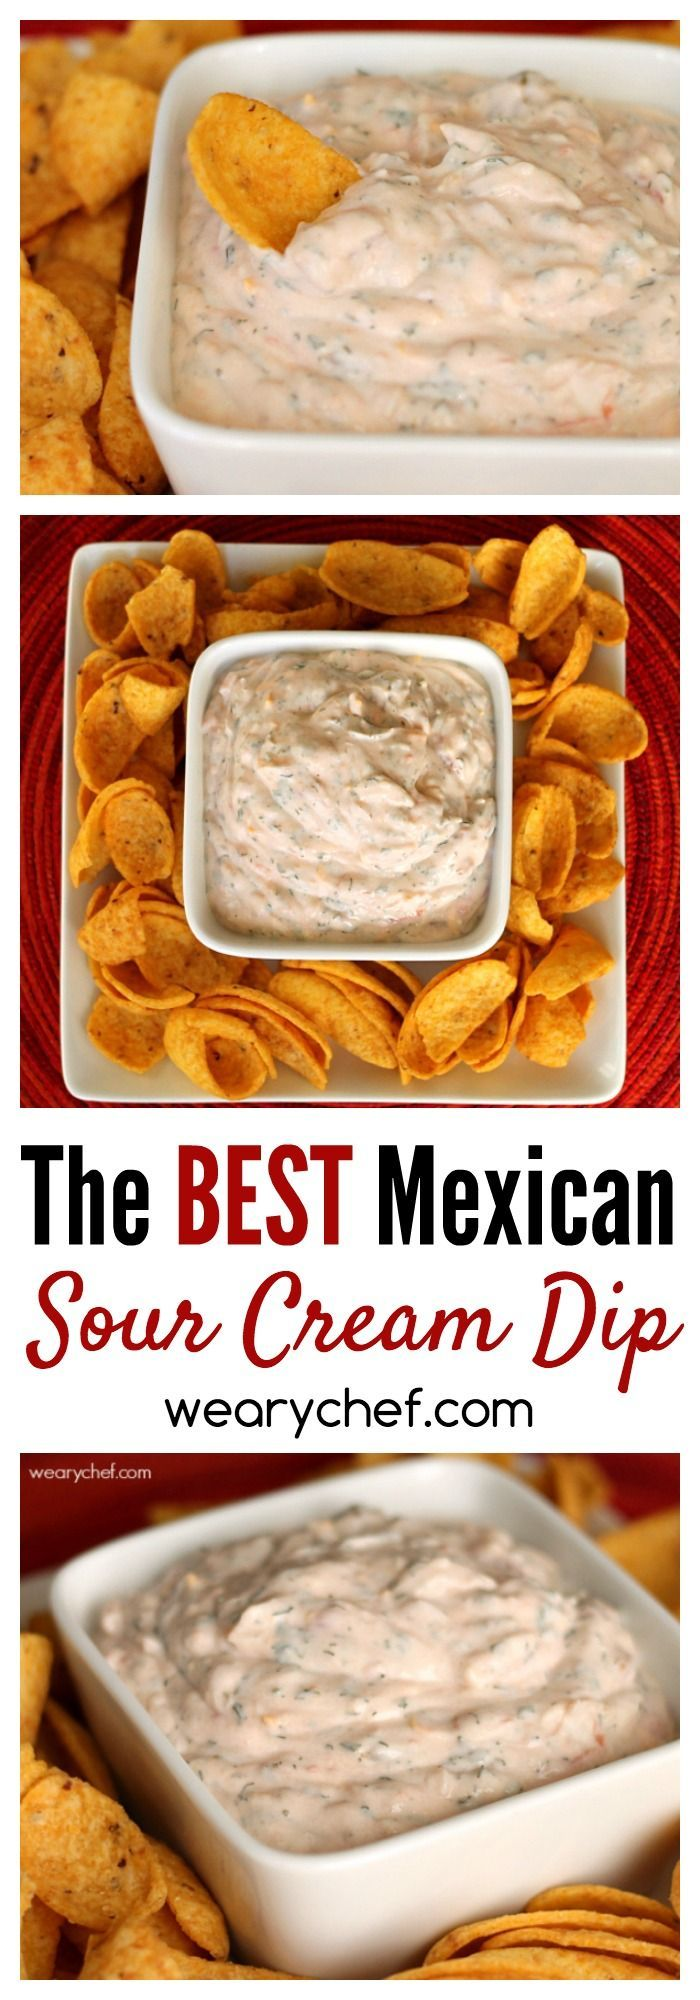 This Crowd Pleasing Mexican Sour Cream Dip Recipe Is Perfect For Last Minute Guests All You Need Is S Sour Cream Dip Recipes Mexican Sour Cream Sour Cream Dip